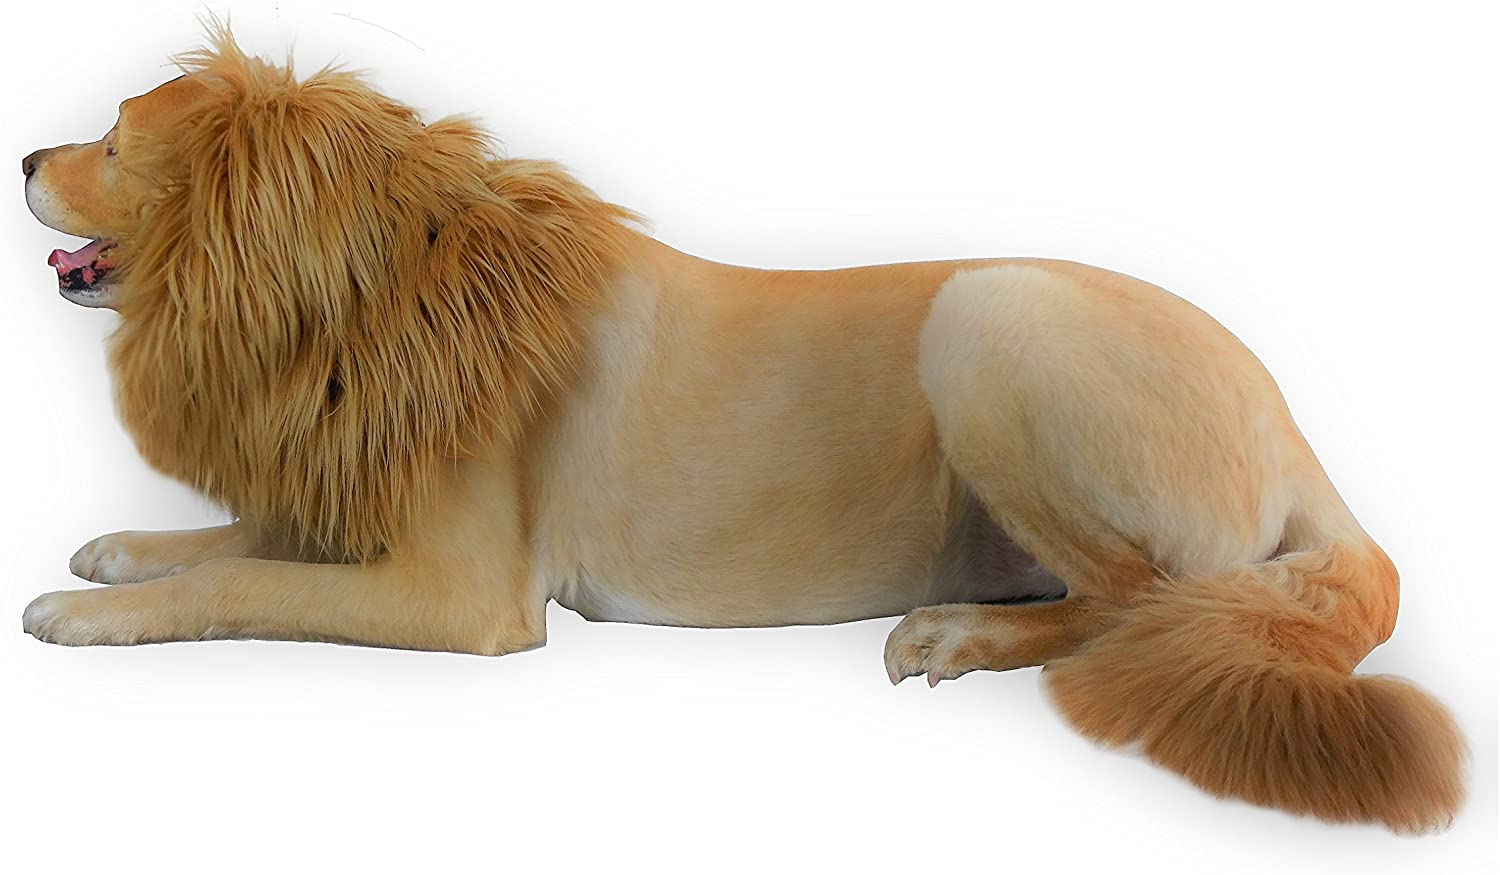 MOOZA Dog Halloween Costume Dog and Human Lion Mane Plus Tail Dog Costume Premium Quality con DoubleLayer Fabric, Comfortable Lion King Wig Costume per Animali e Human Make Your Dog Lion King!